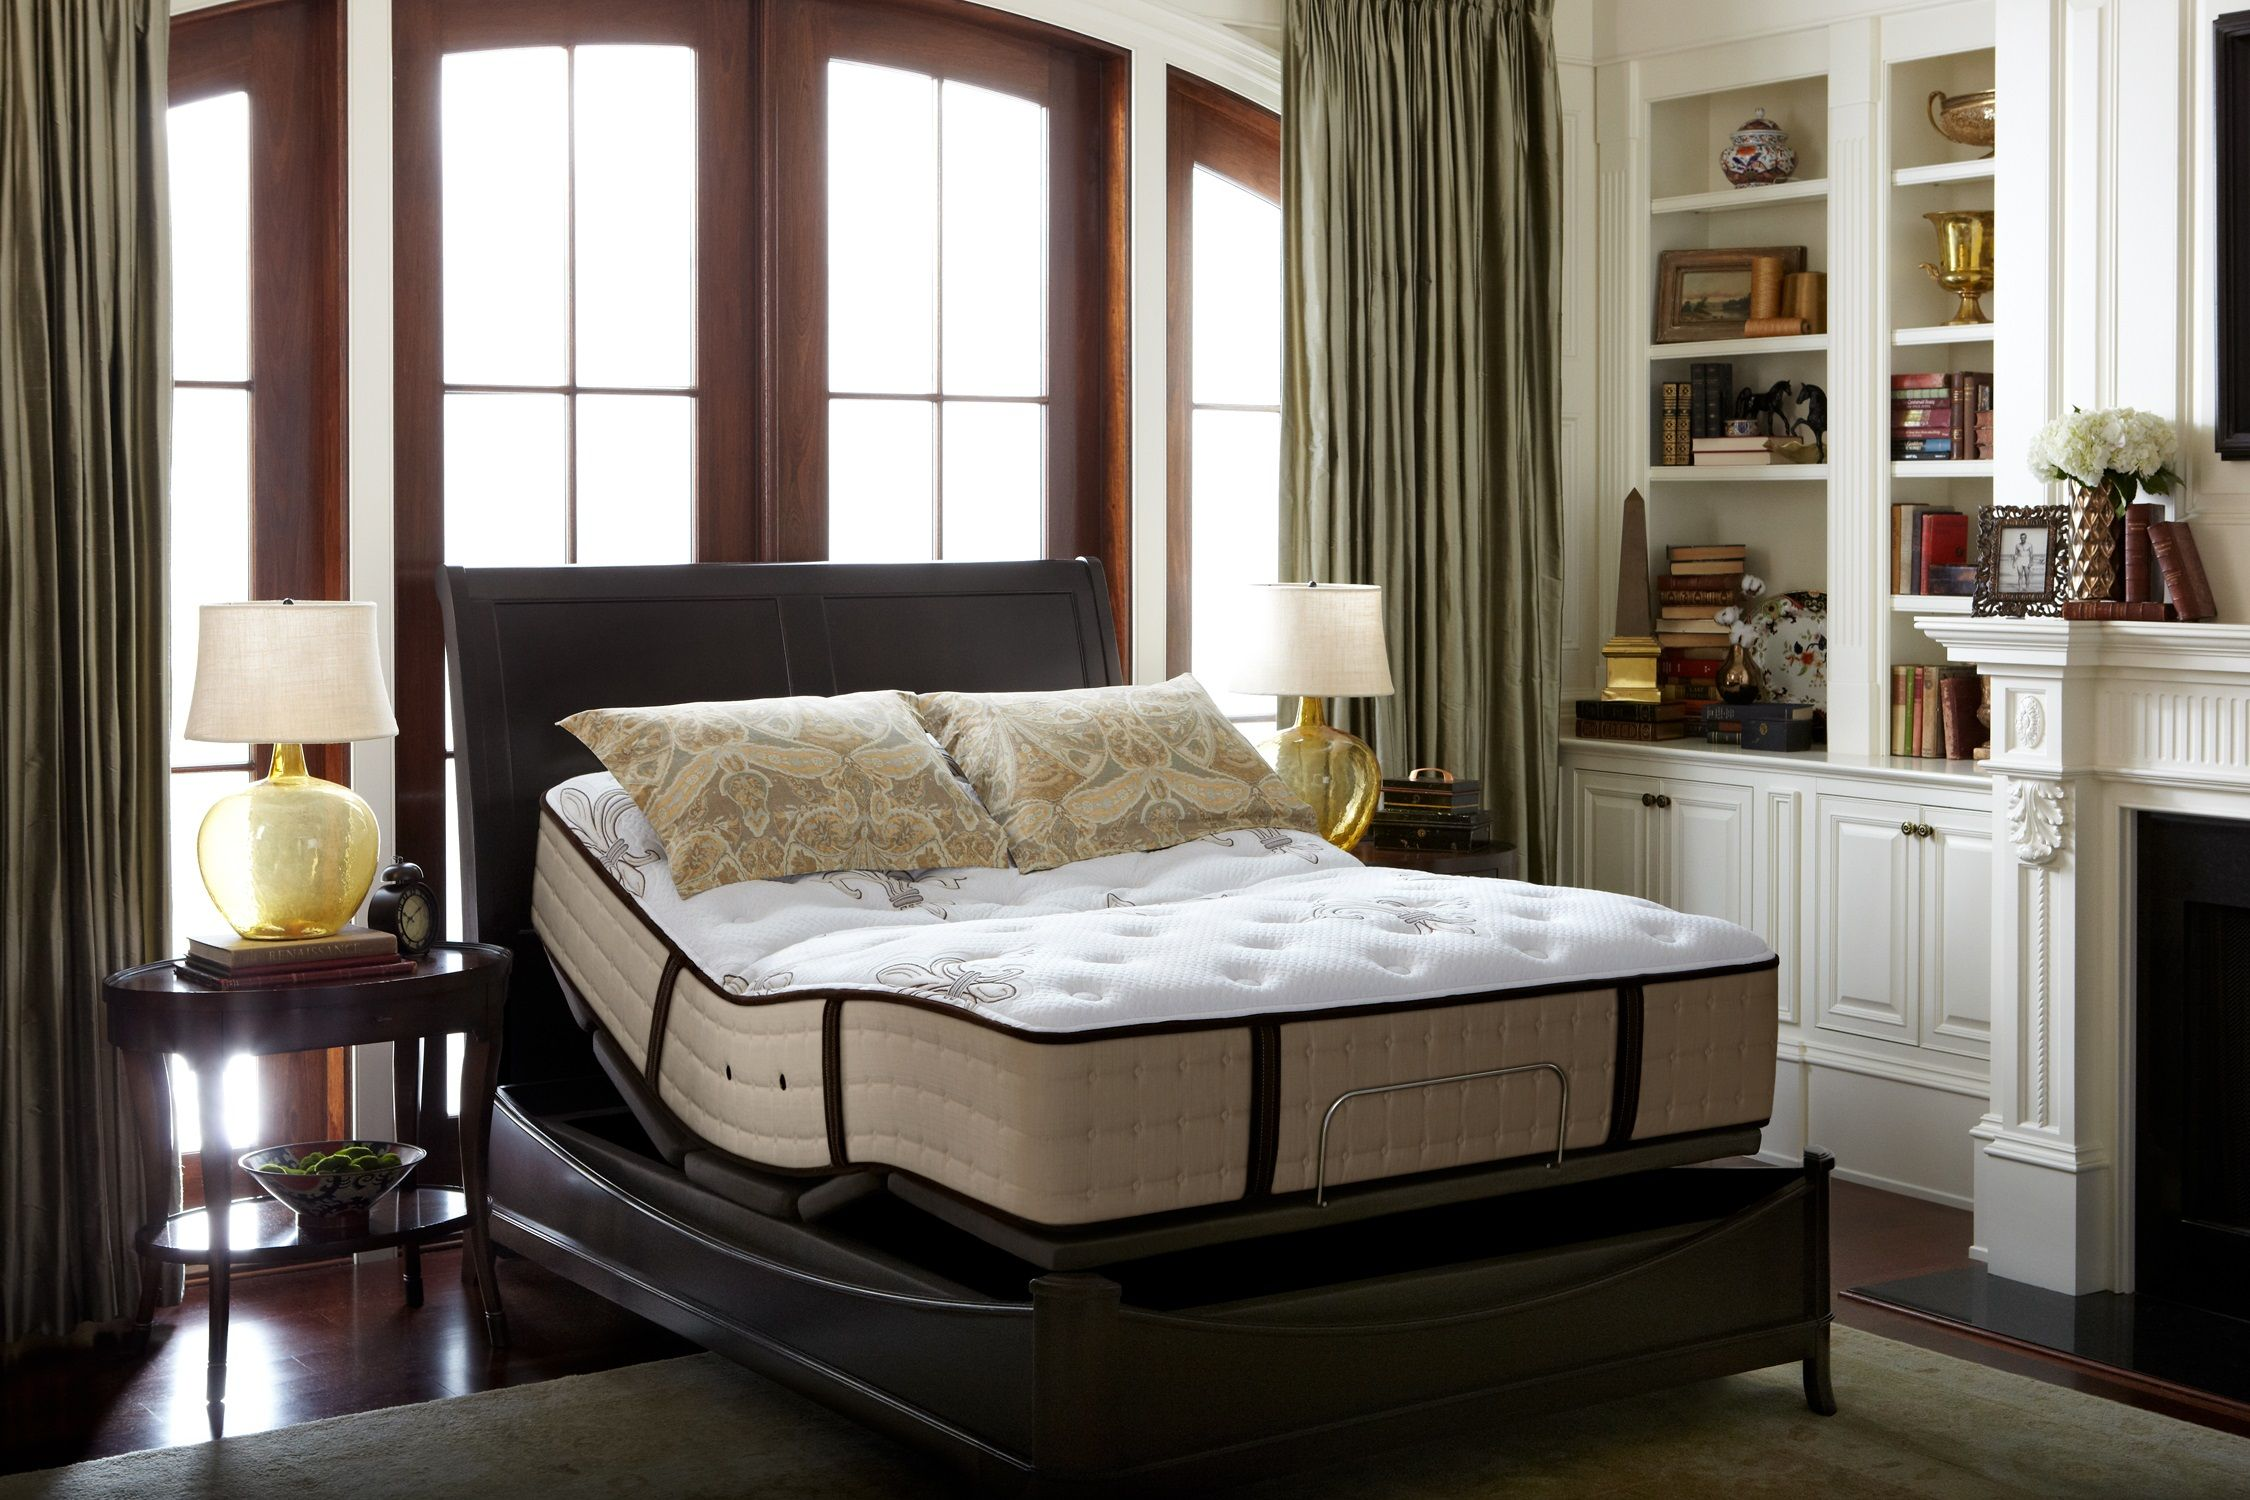 Queen Lakelet Ease Adj Set Foundations From Stearns Foster At Furniture California King Stearns Foster